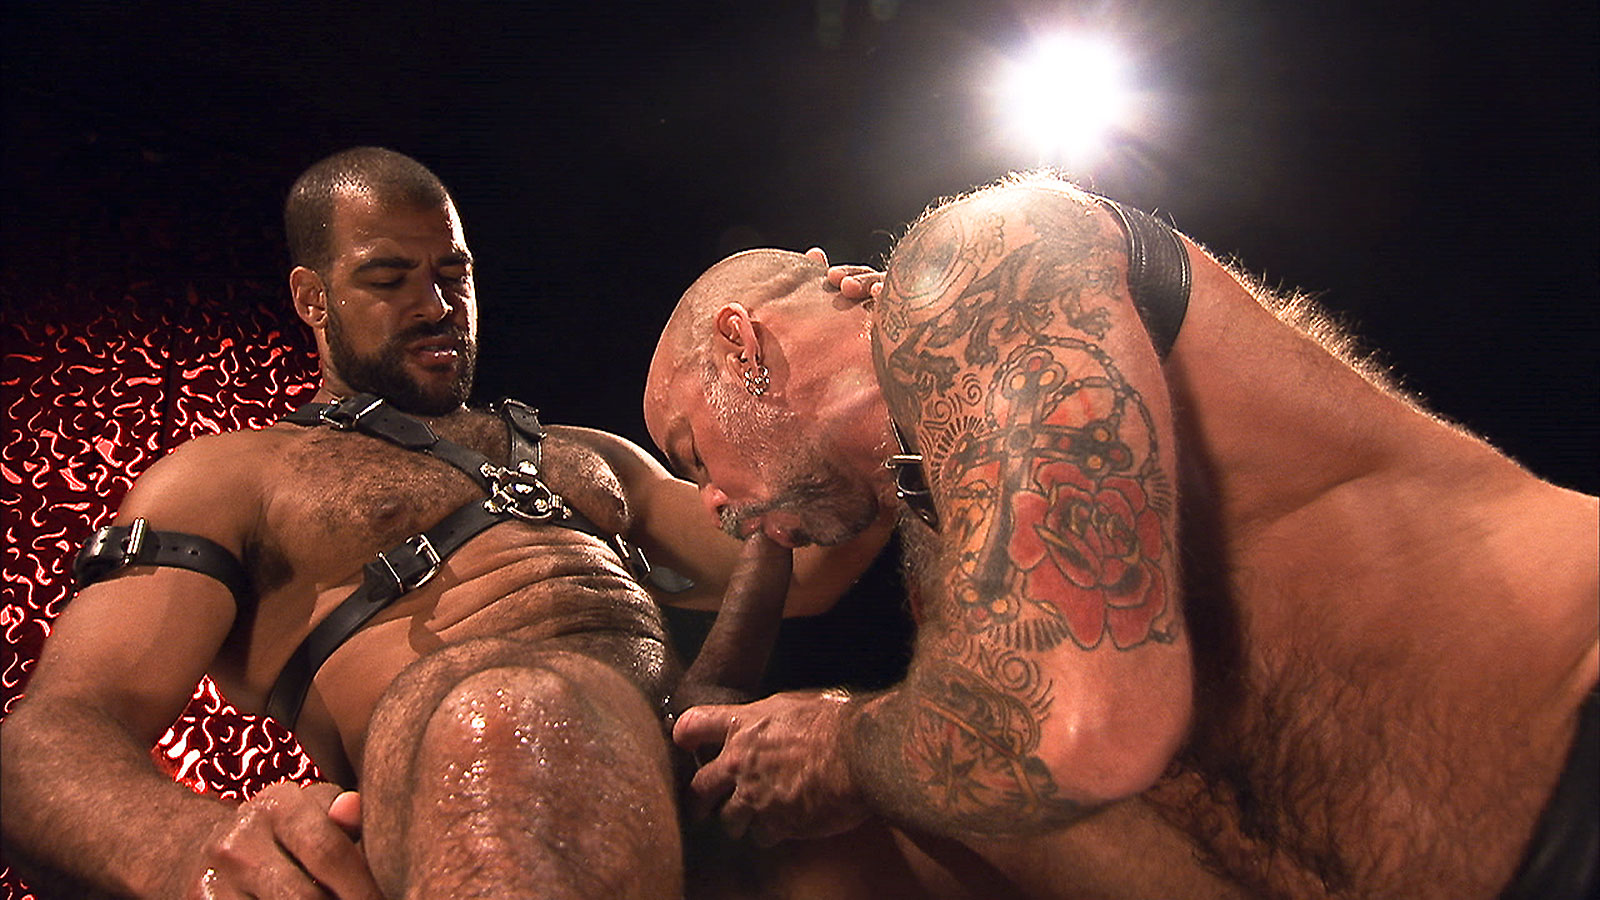 Nate Pierce and Roman Wright - Leather and Piss - Scene 1